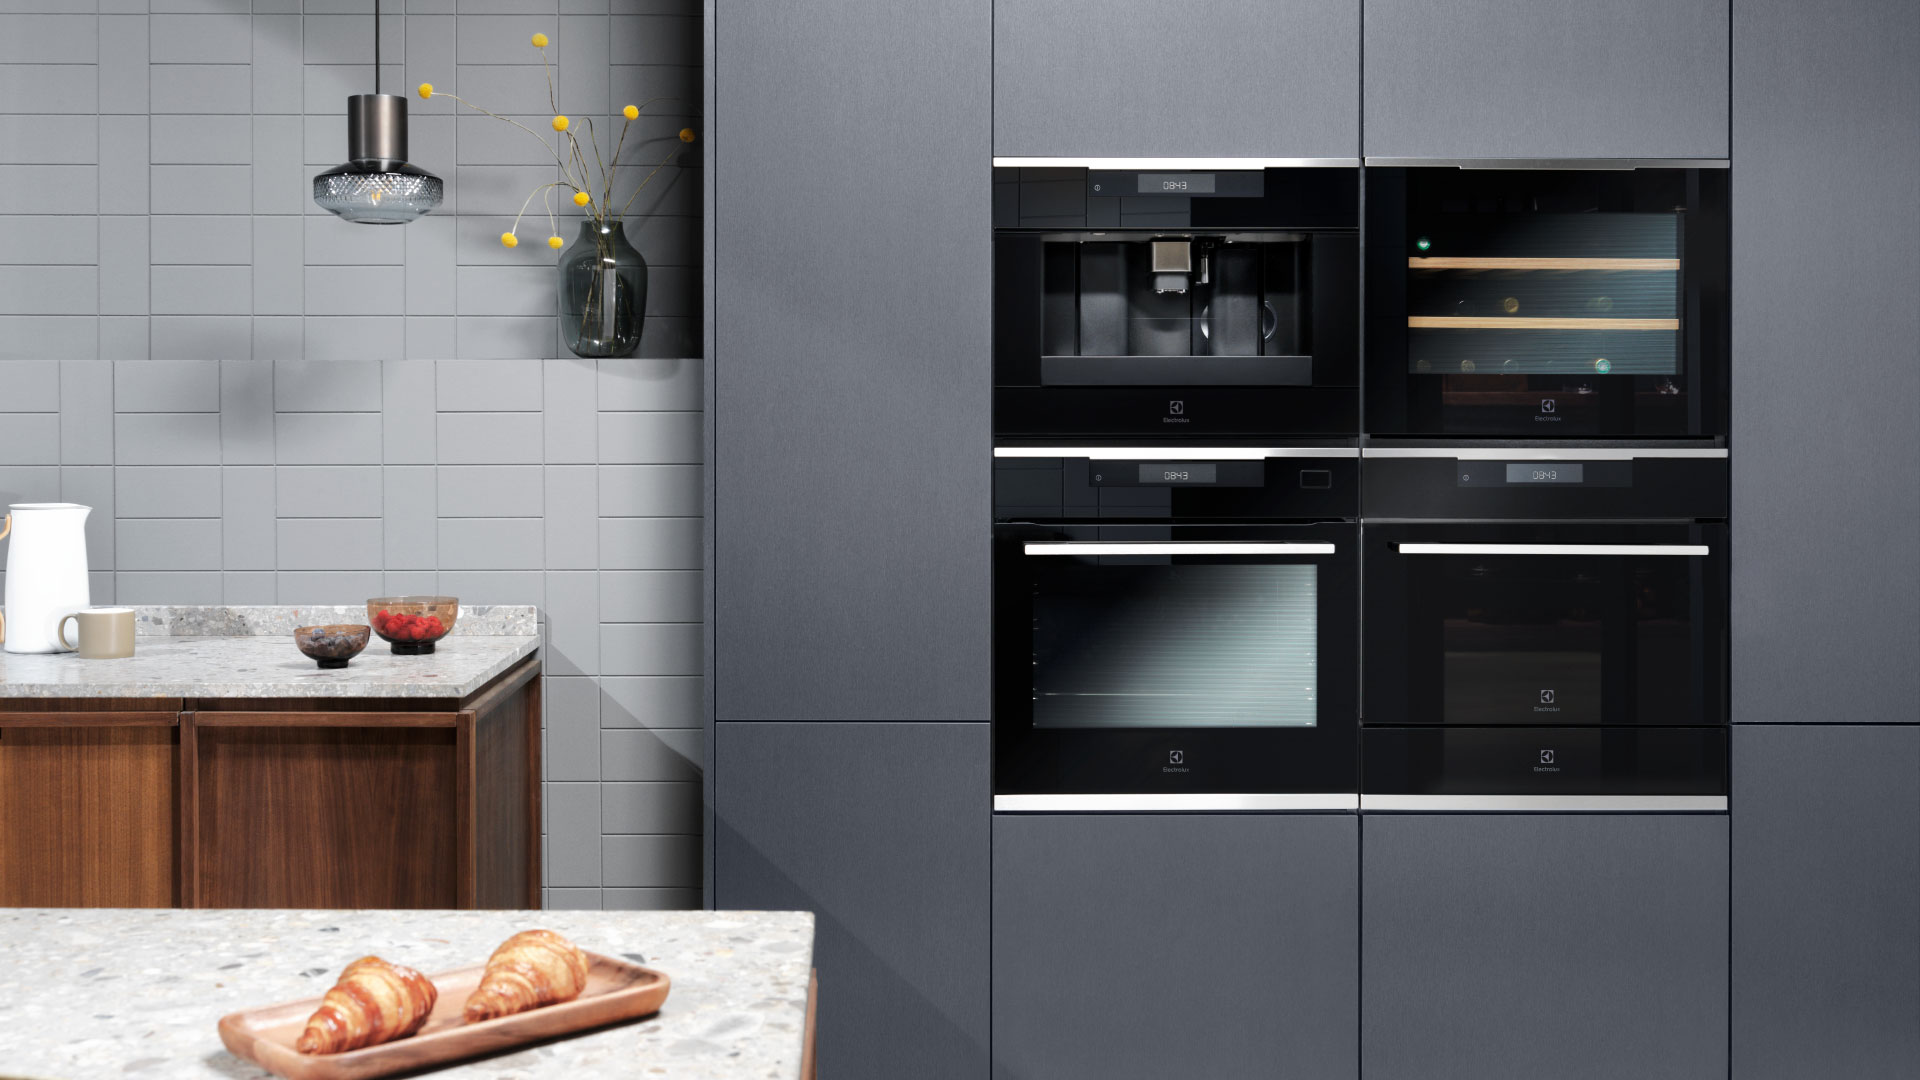 Steam ovens? Electrolux has invented them - Cucine LUBE